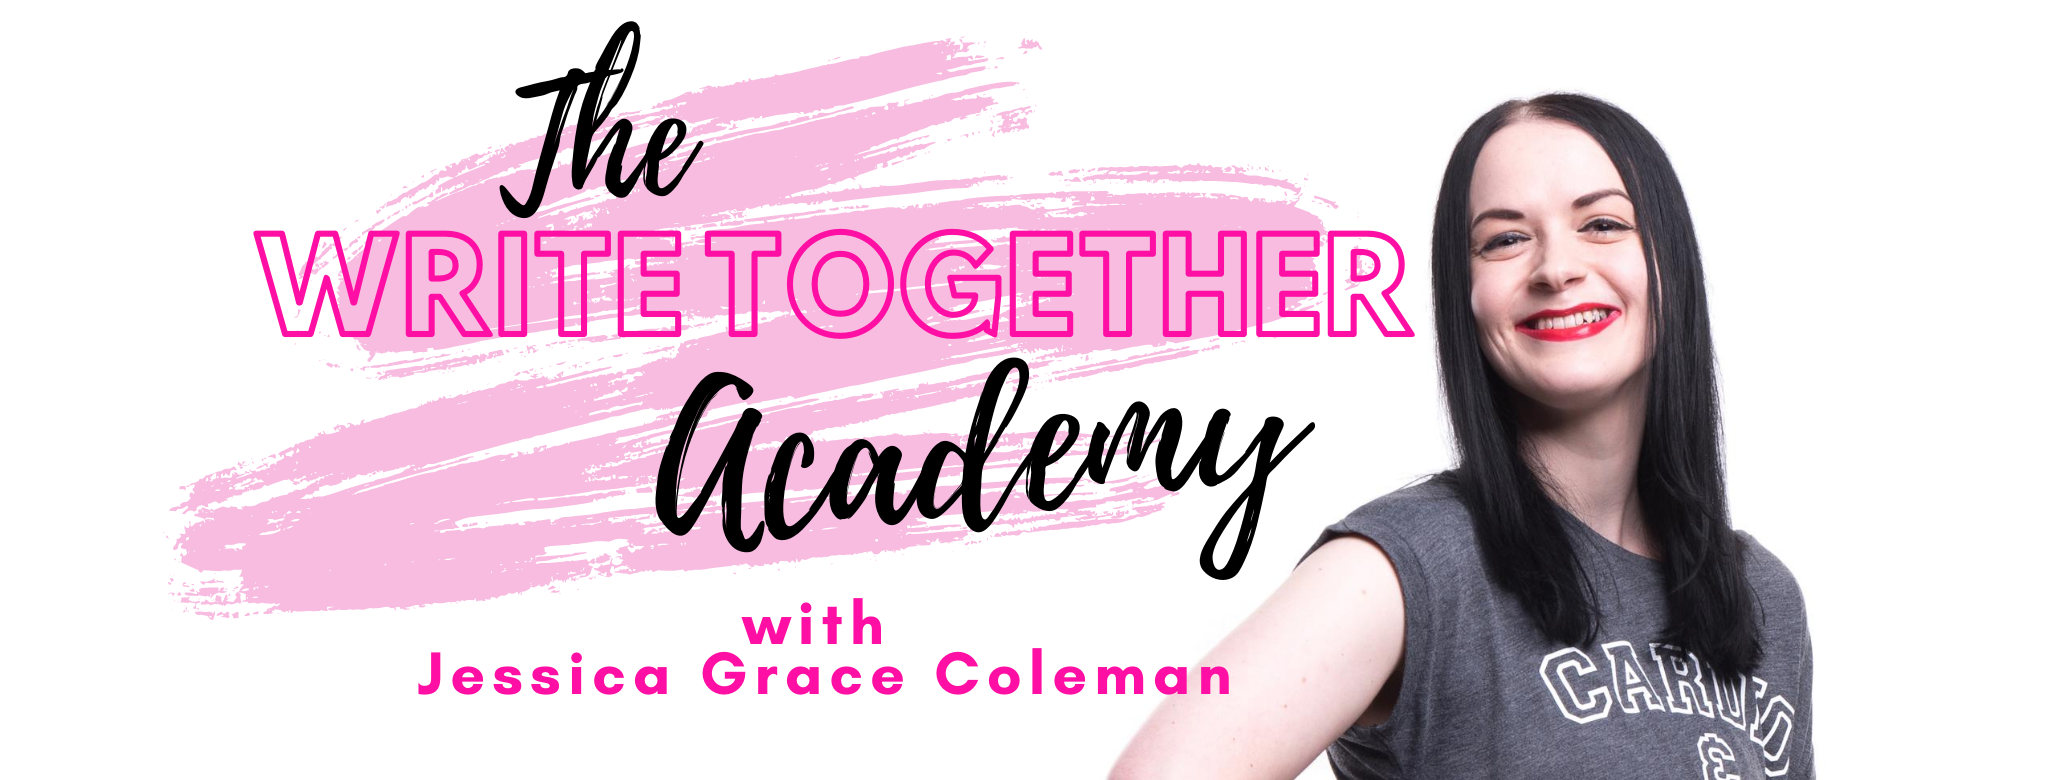 The Write Together Academy with Jessica Grace Coleman